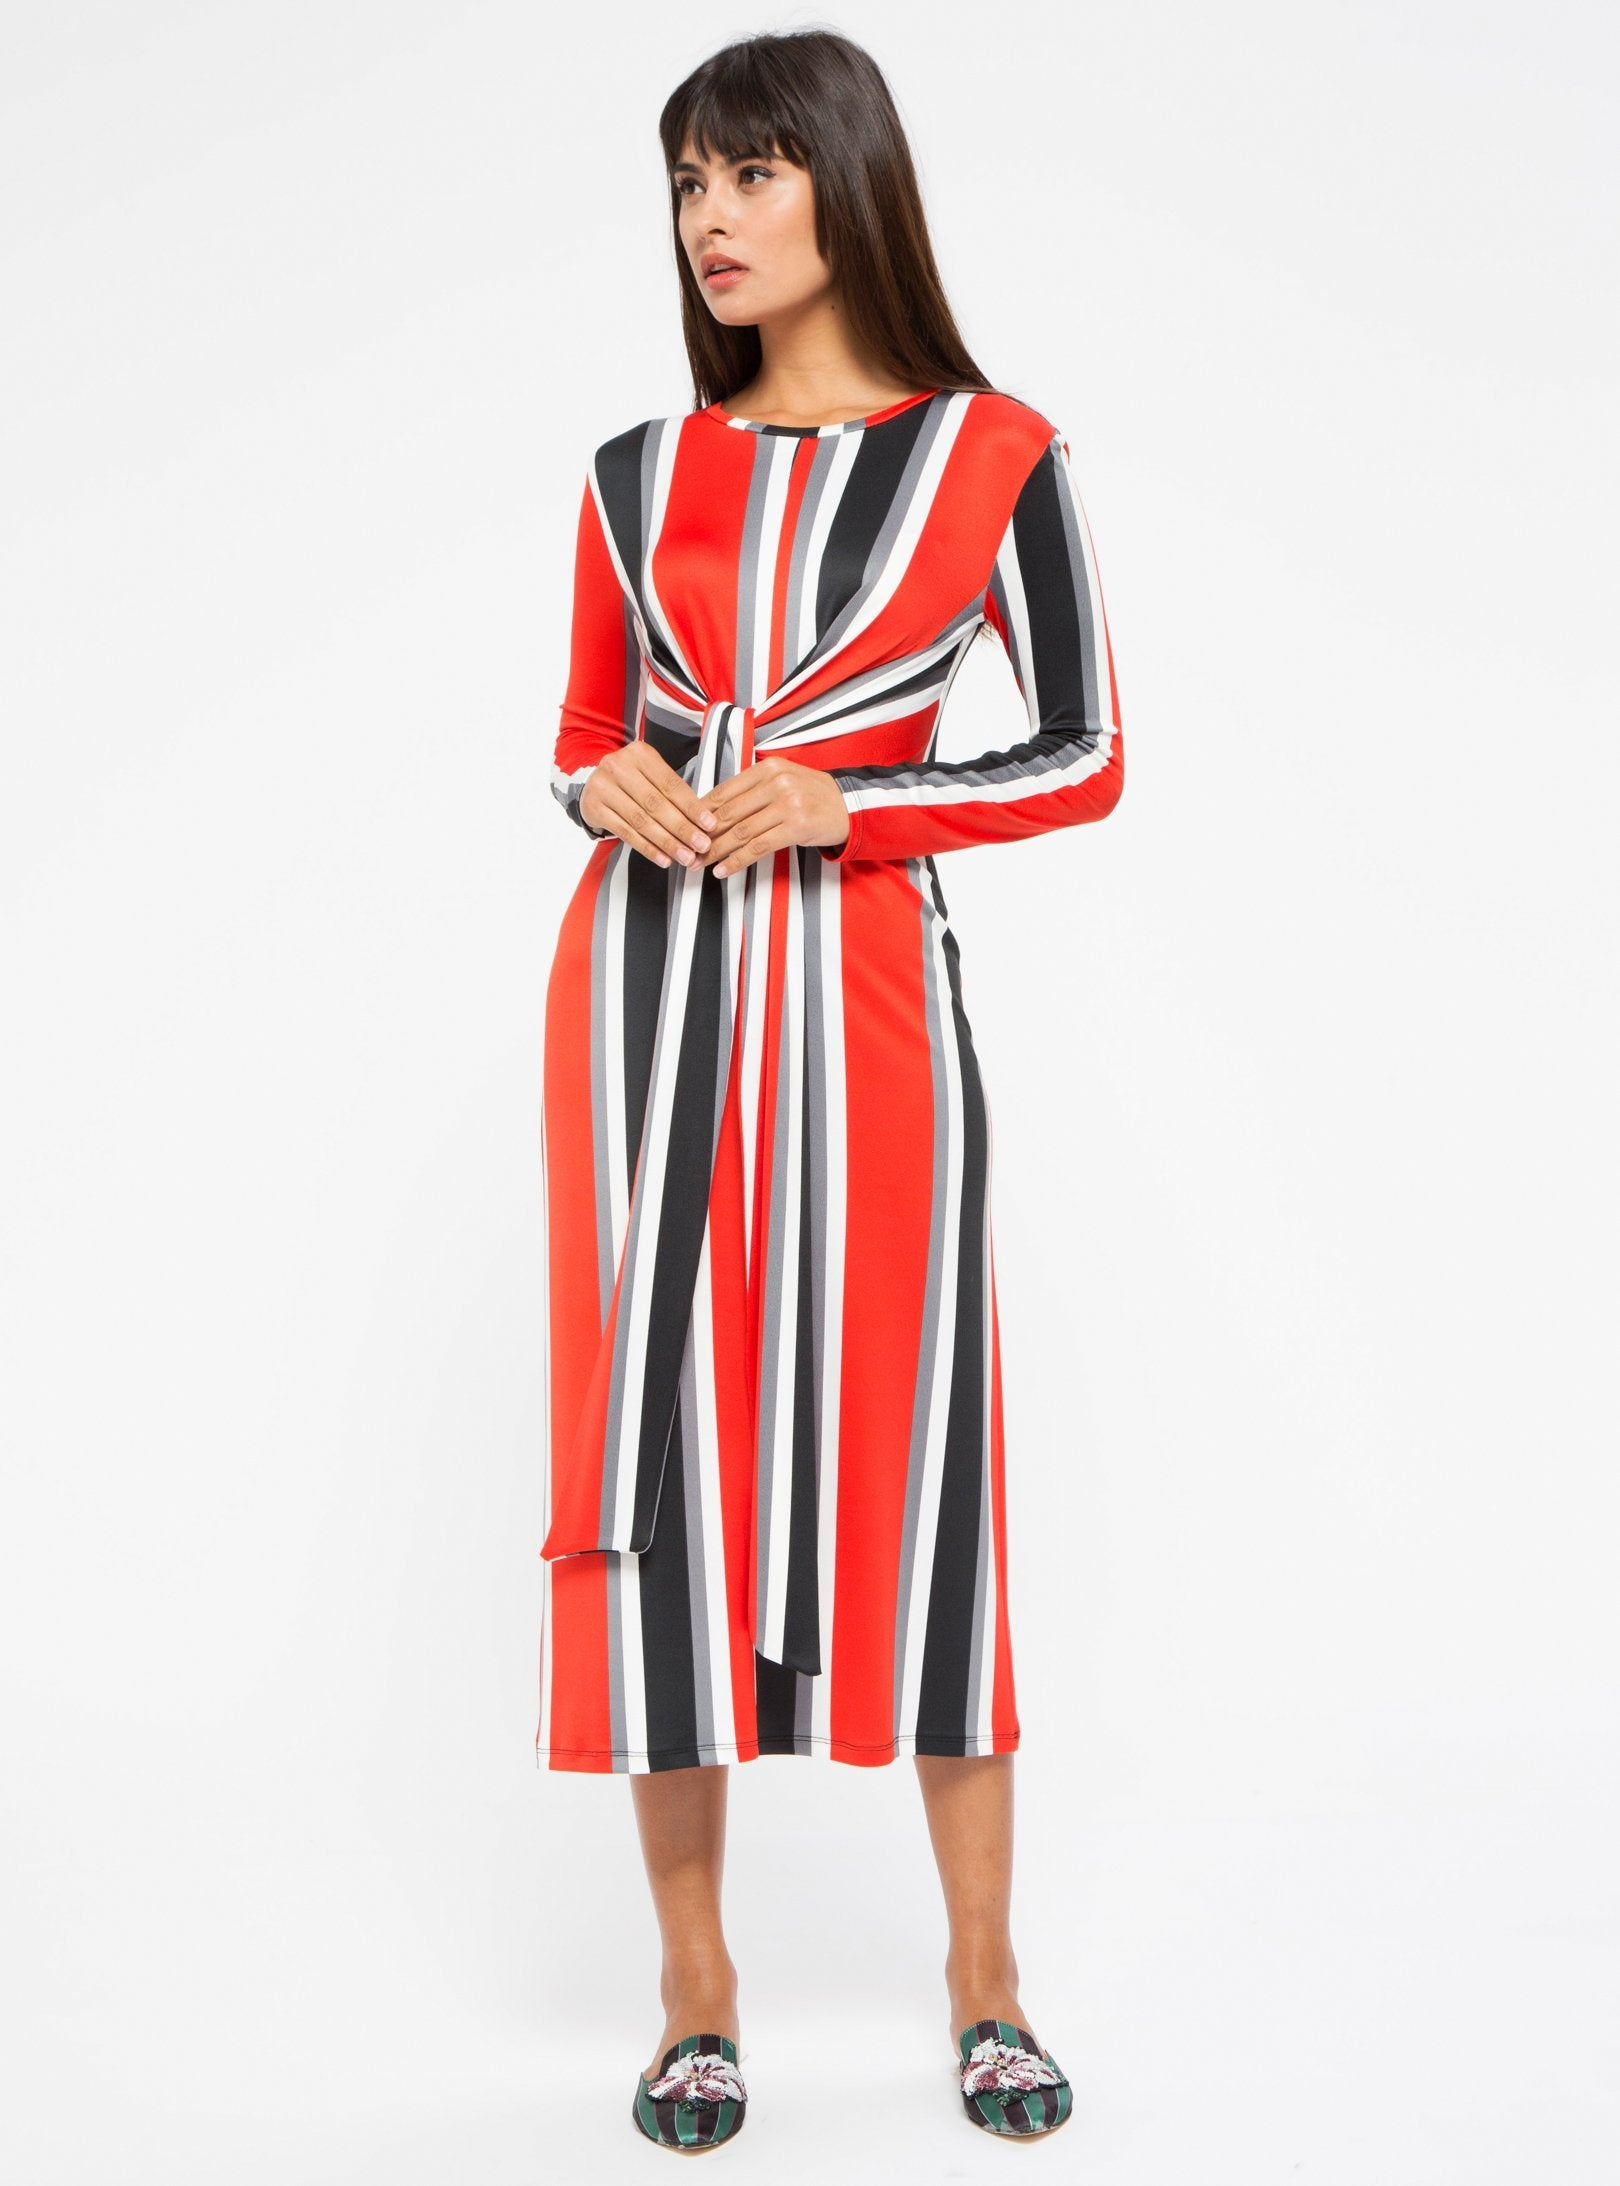 modest long red midi dress with prints and patterns